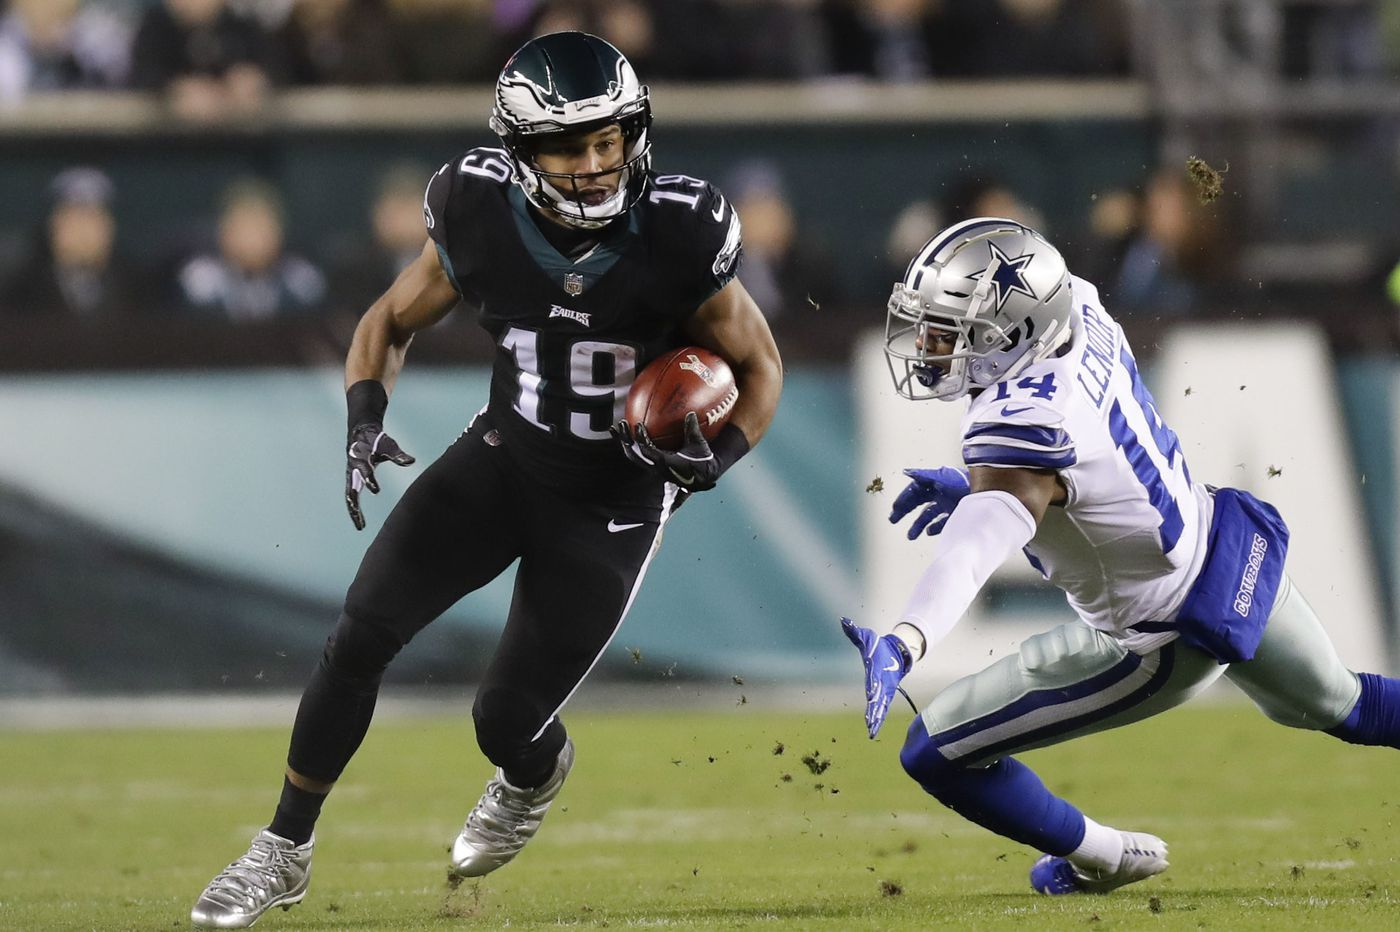 Eagles wide receiver Golden Tate has been money against the Saints | NFL Week 11 preview